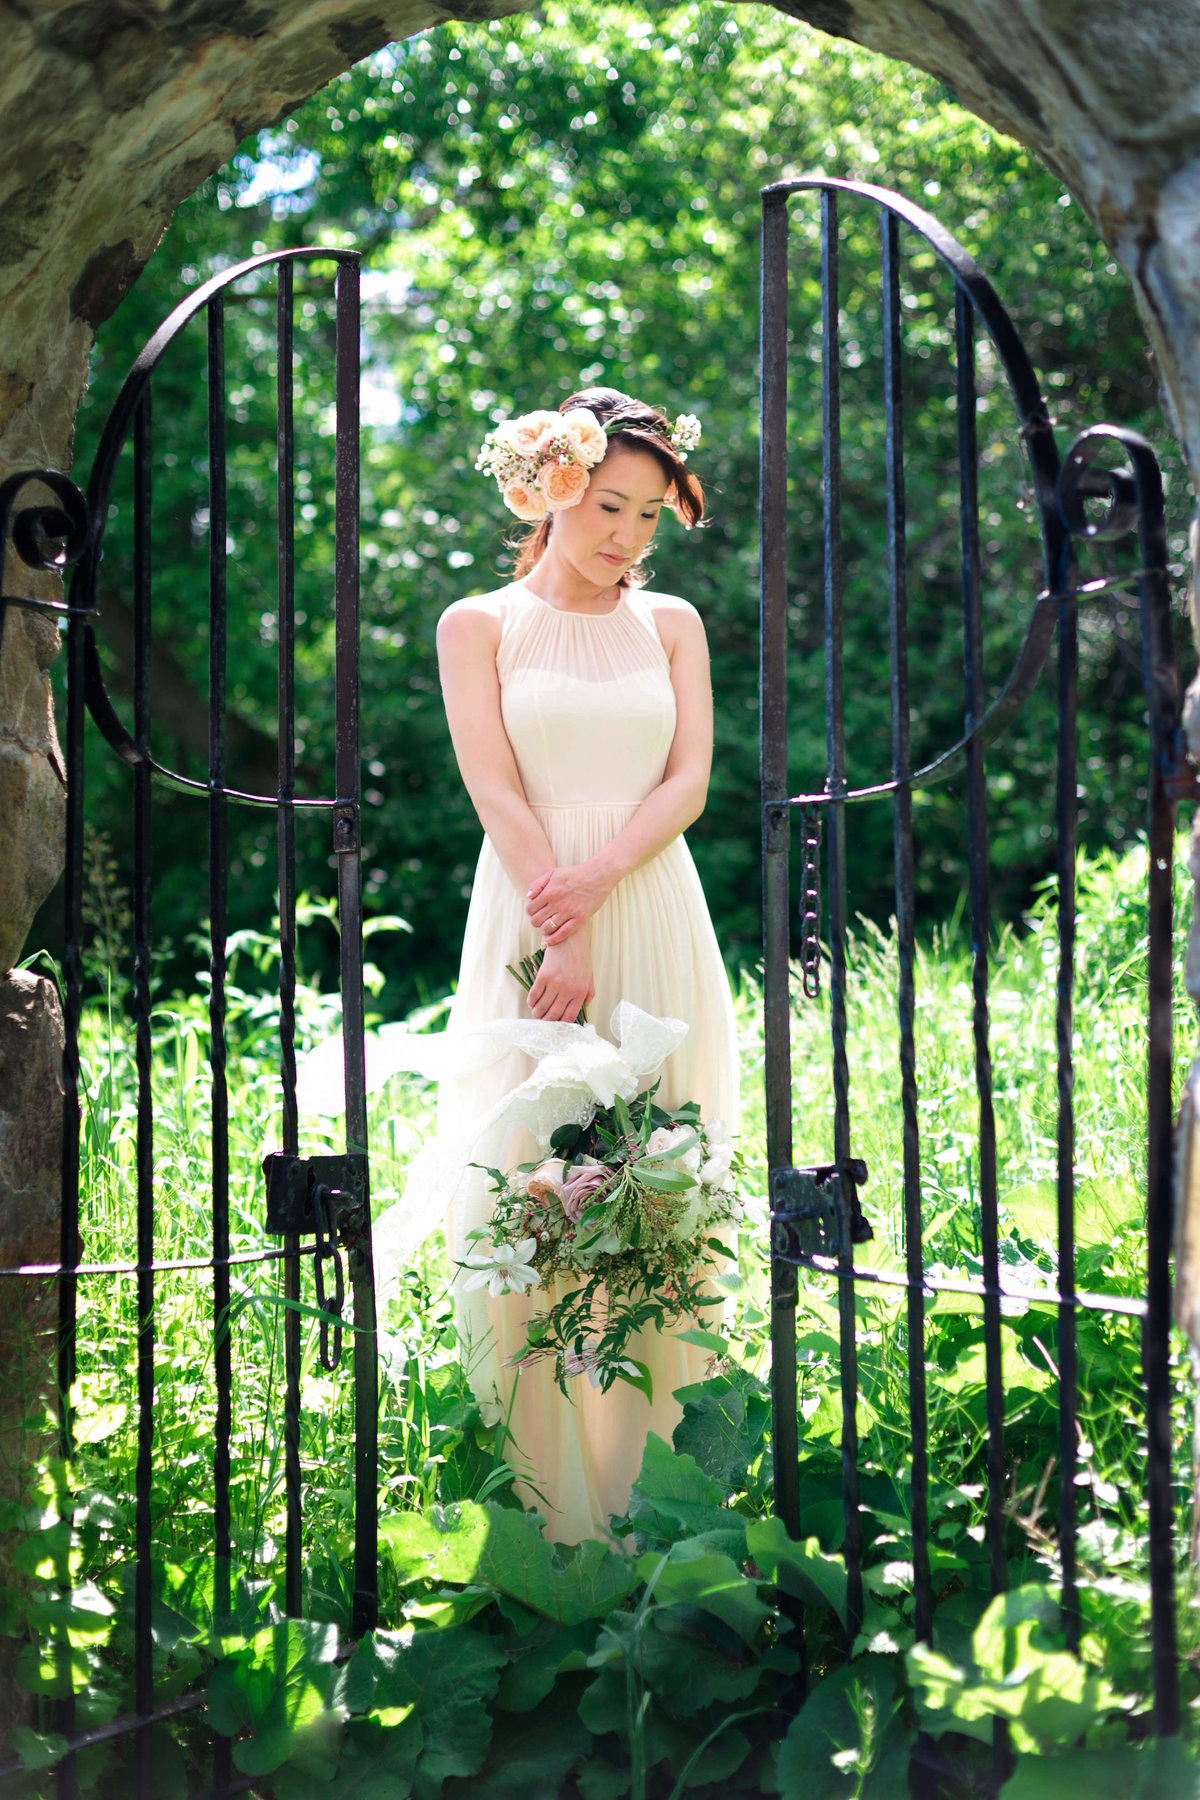 The bride is framed by a stone wall and gate while among the plants on her wedding day at Inn at Castle Hill at Barn at Crane Estate wedding